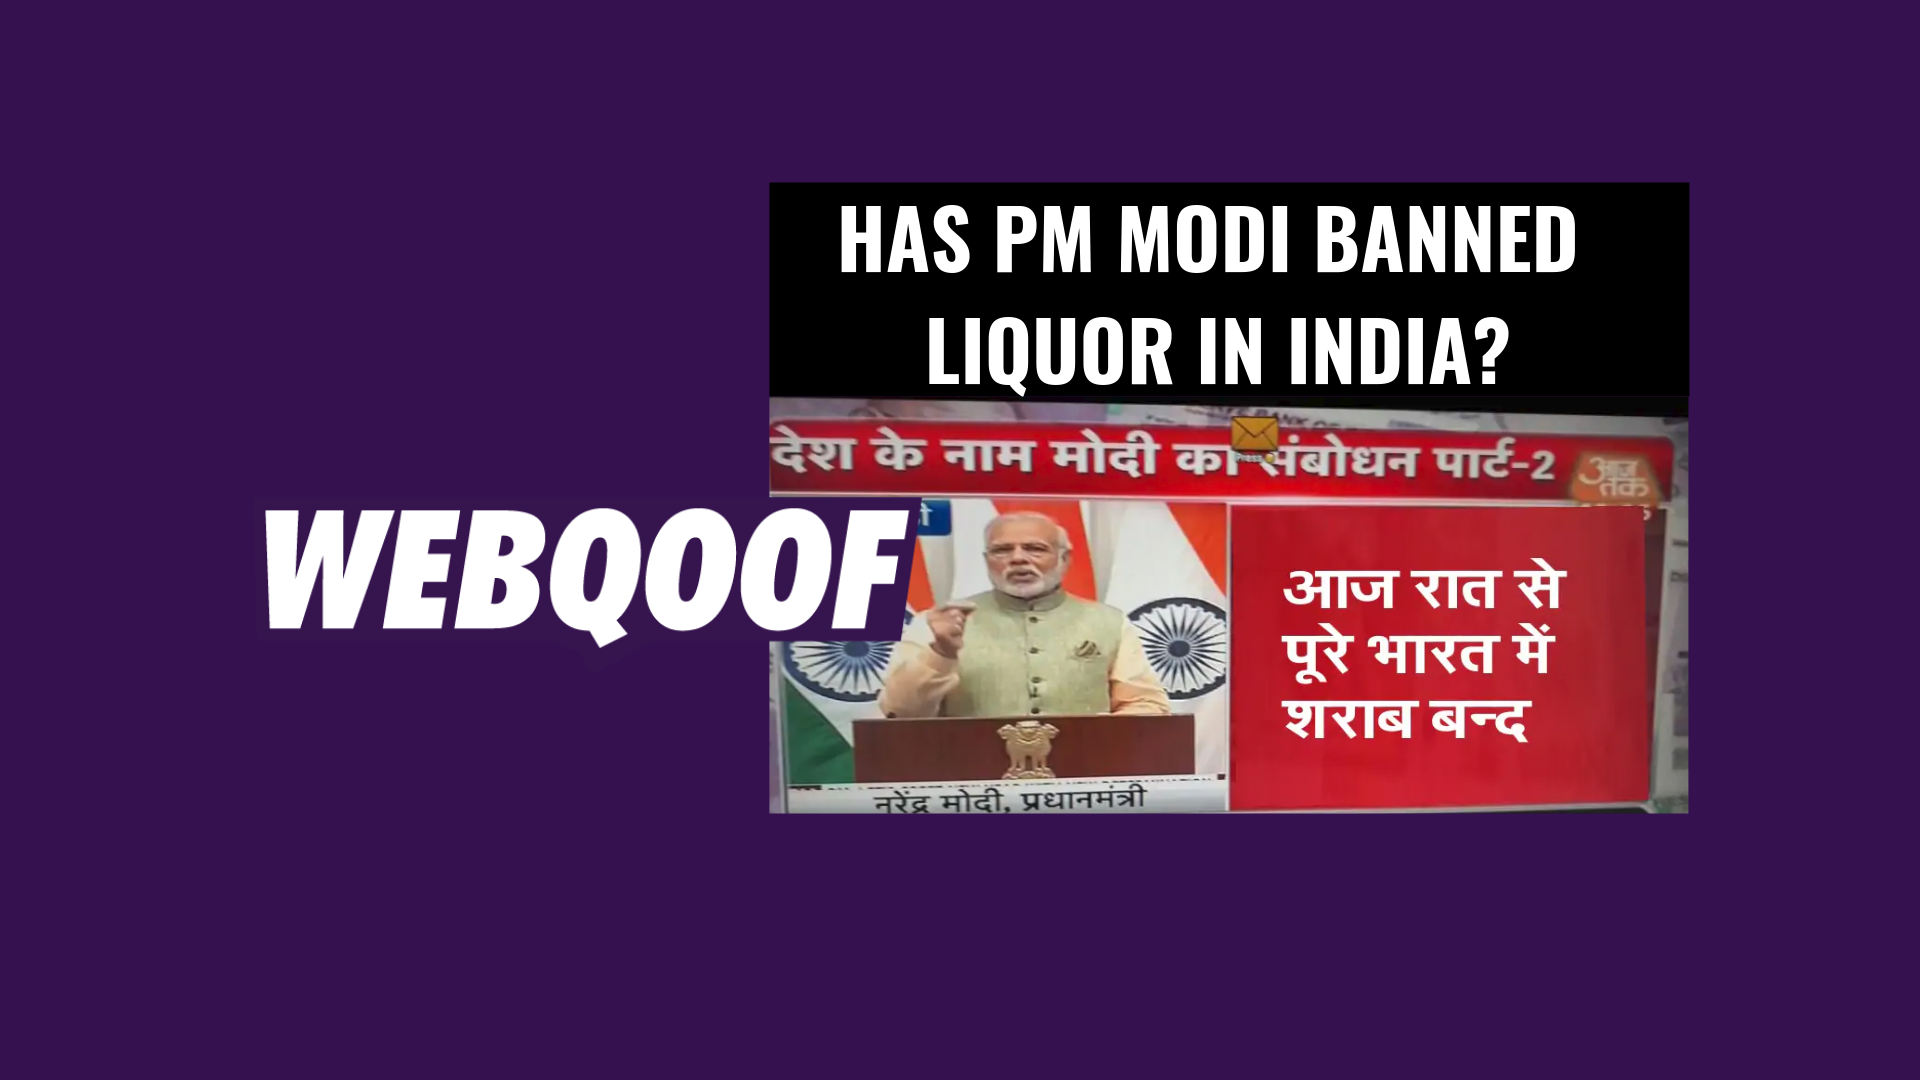 Has PM Modi Banned Liquor in India? No, It's a Morphed Image